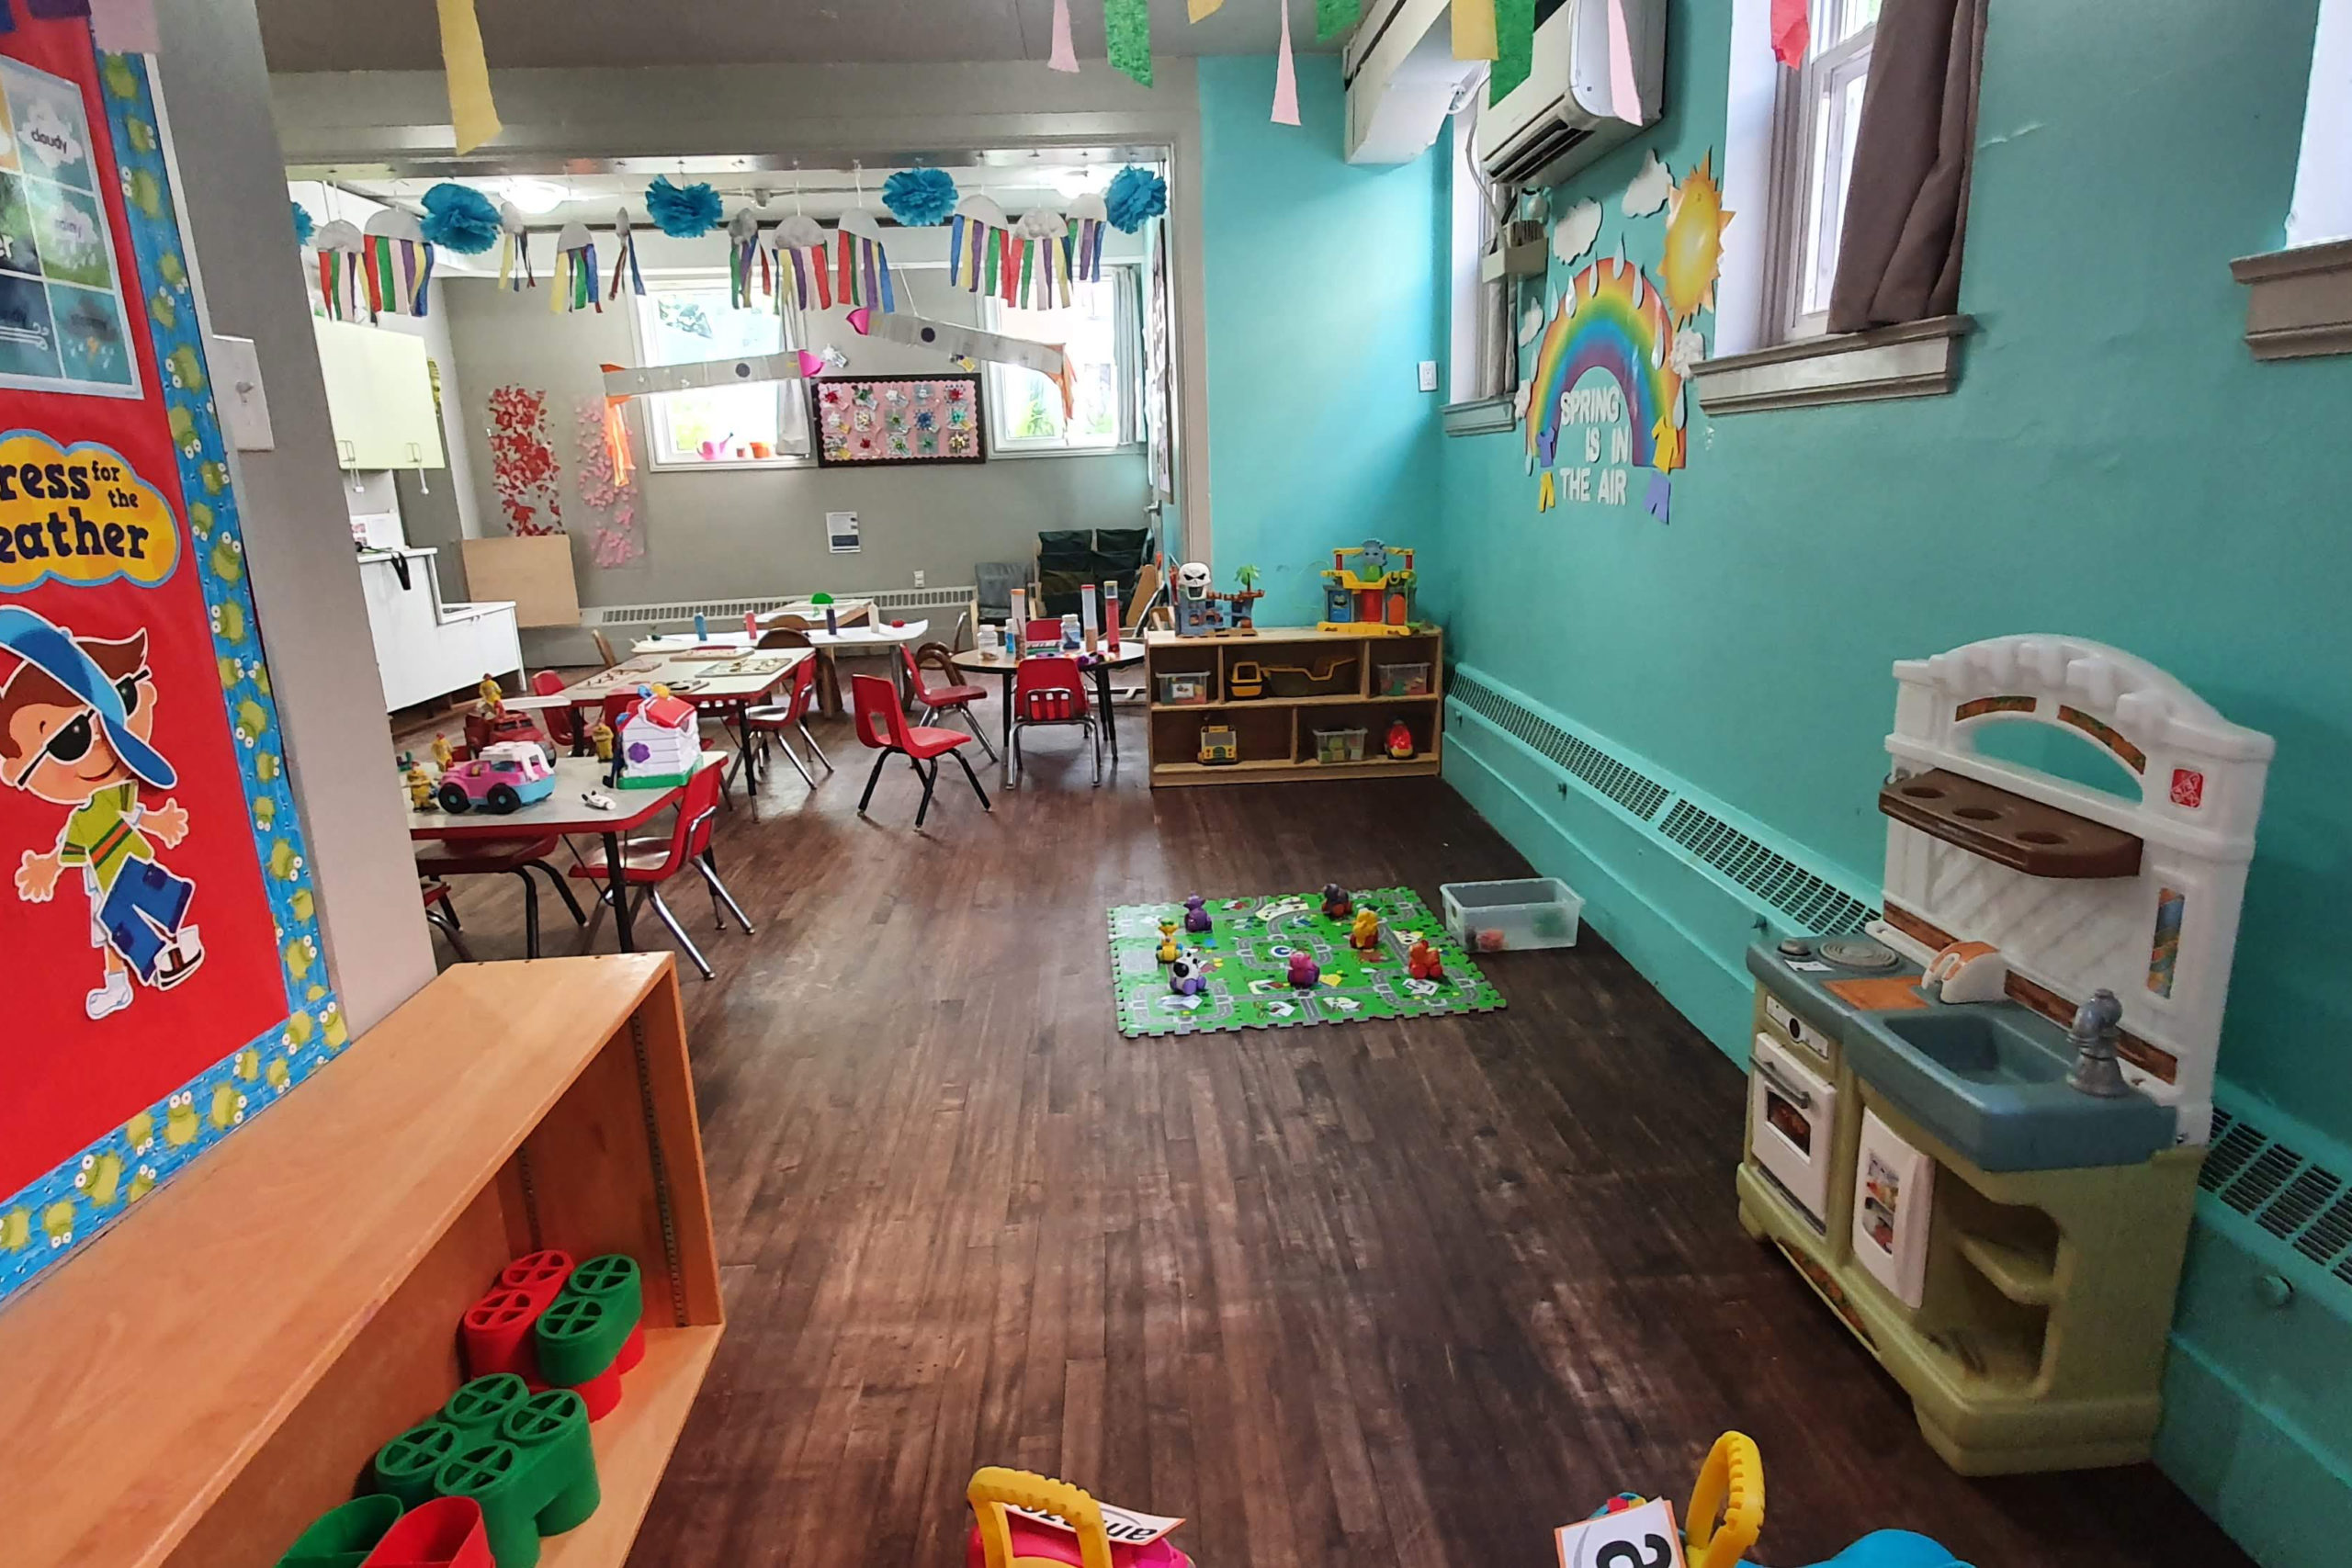 toddler room with tables and toys